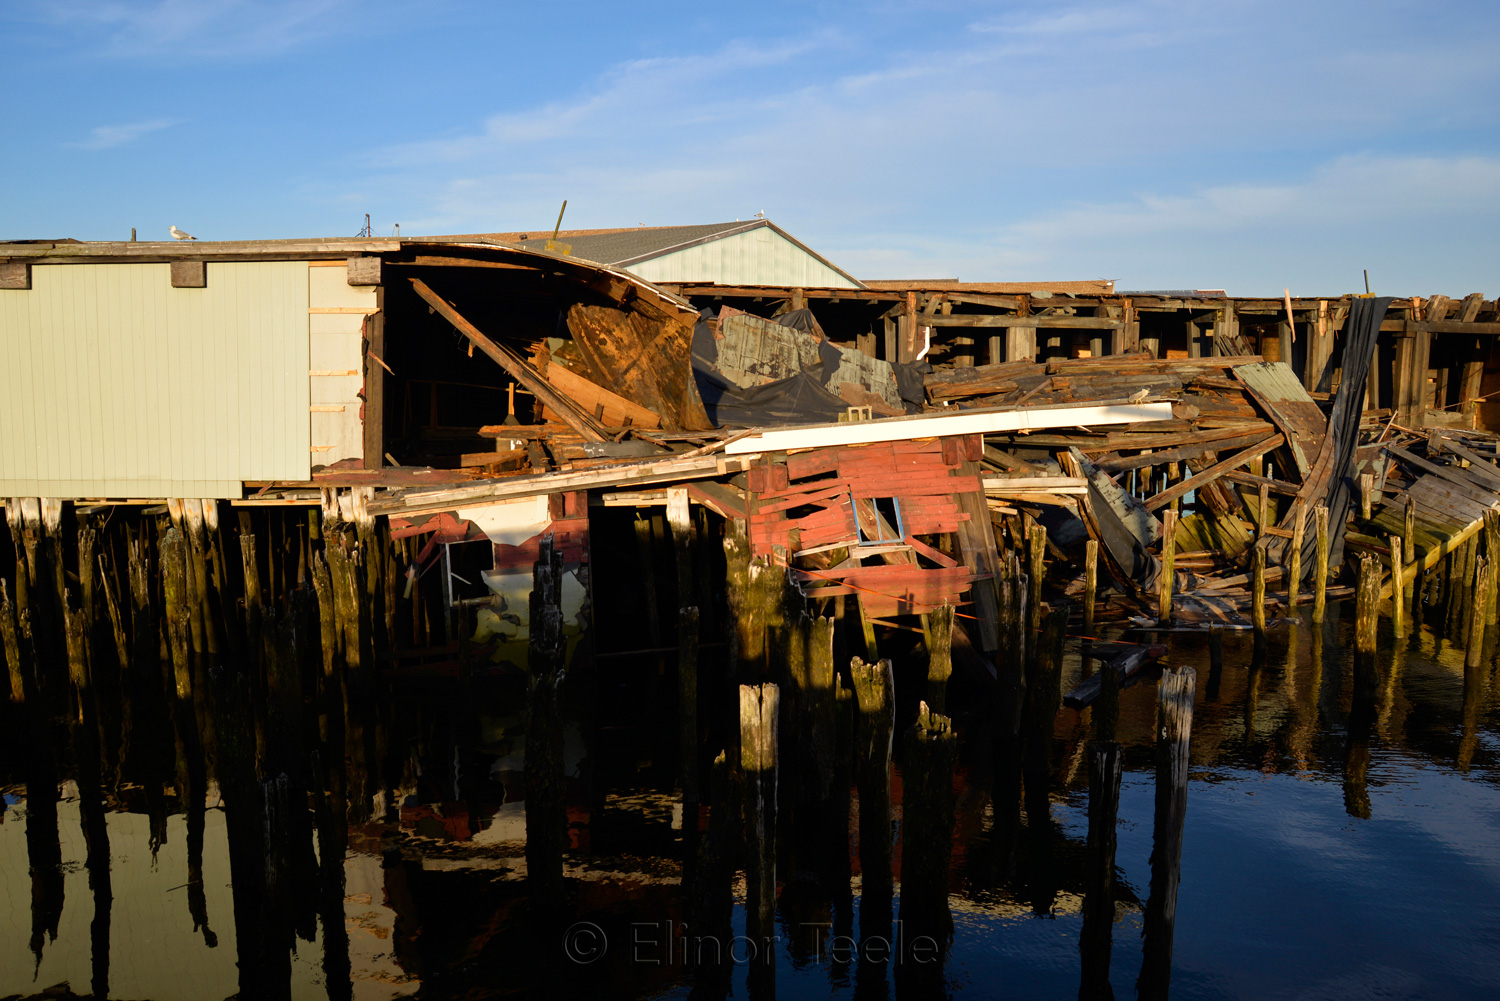 Gloucester Waterfront - Collapsed Warehouse 1